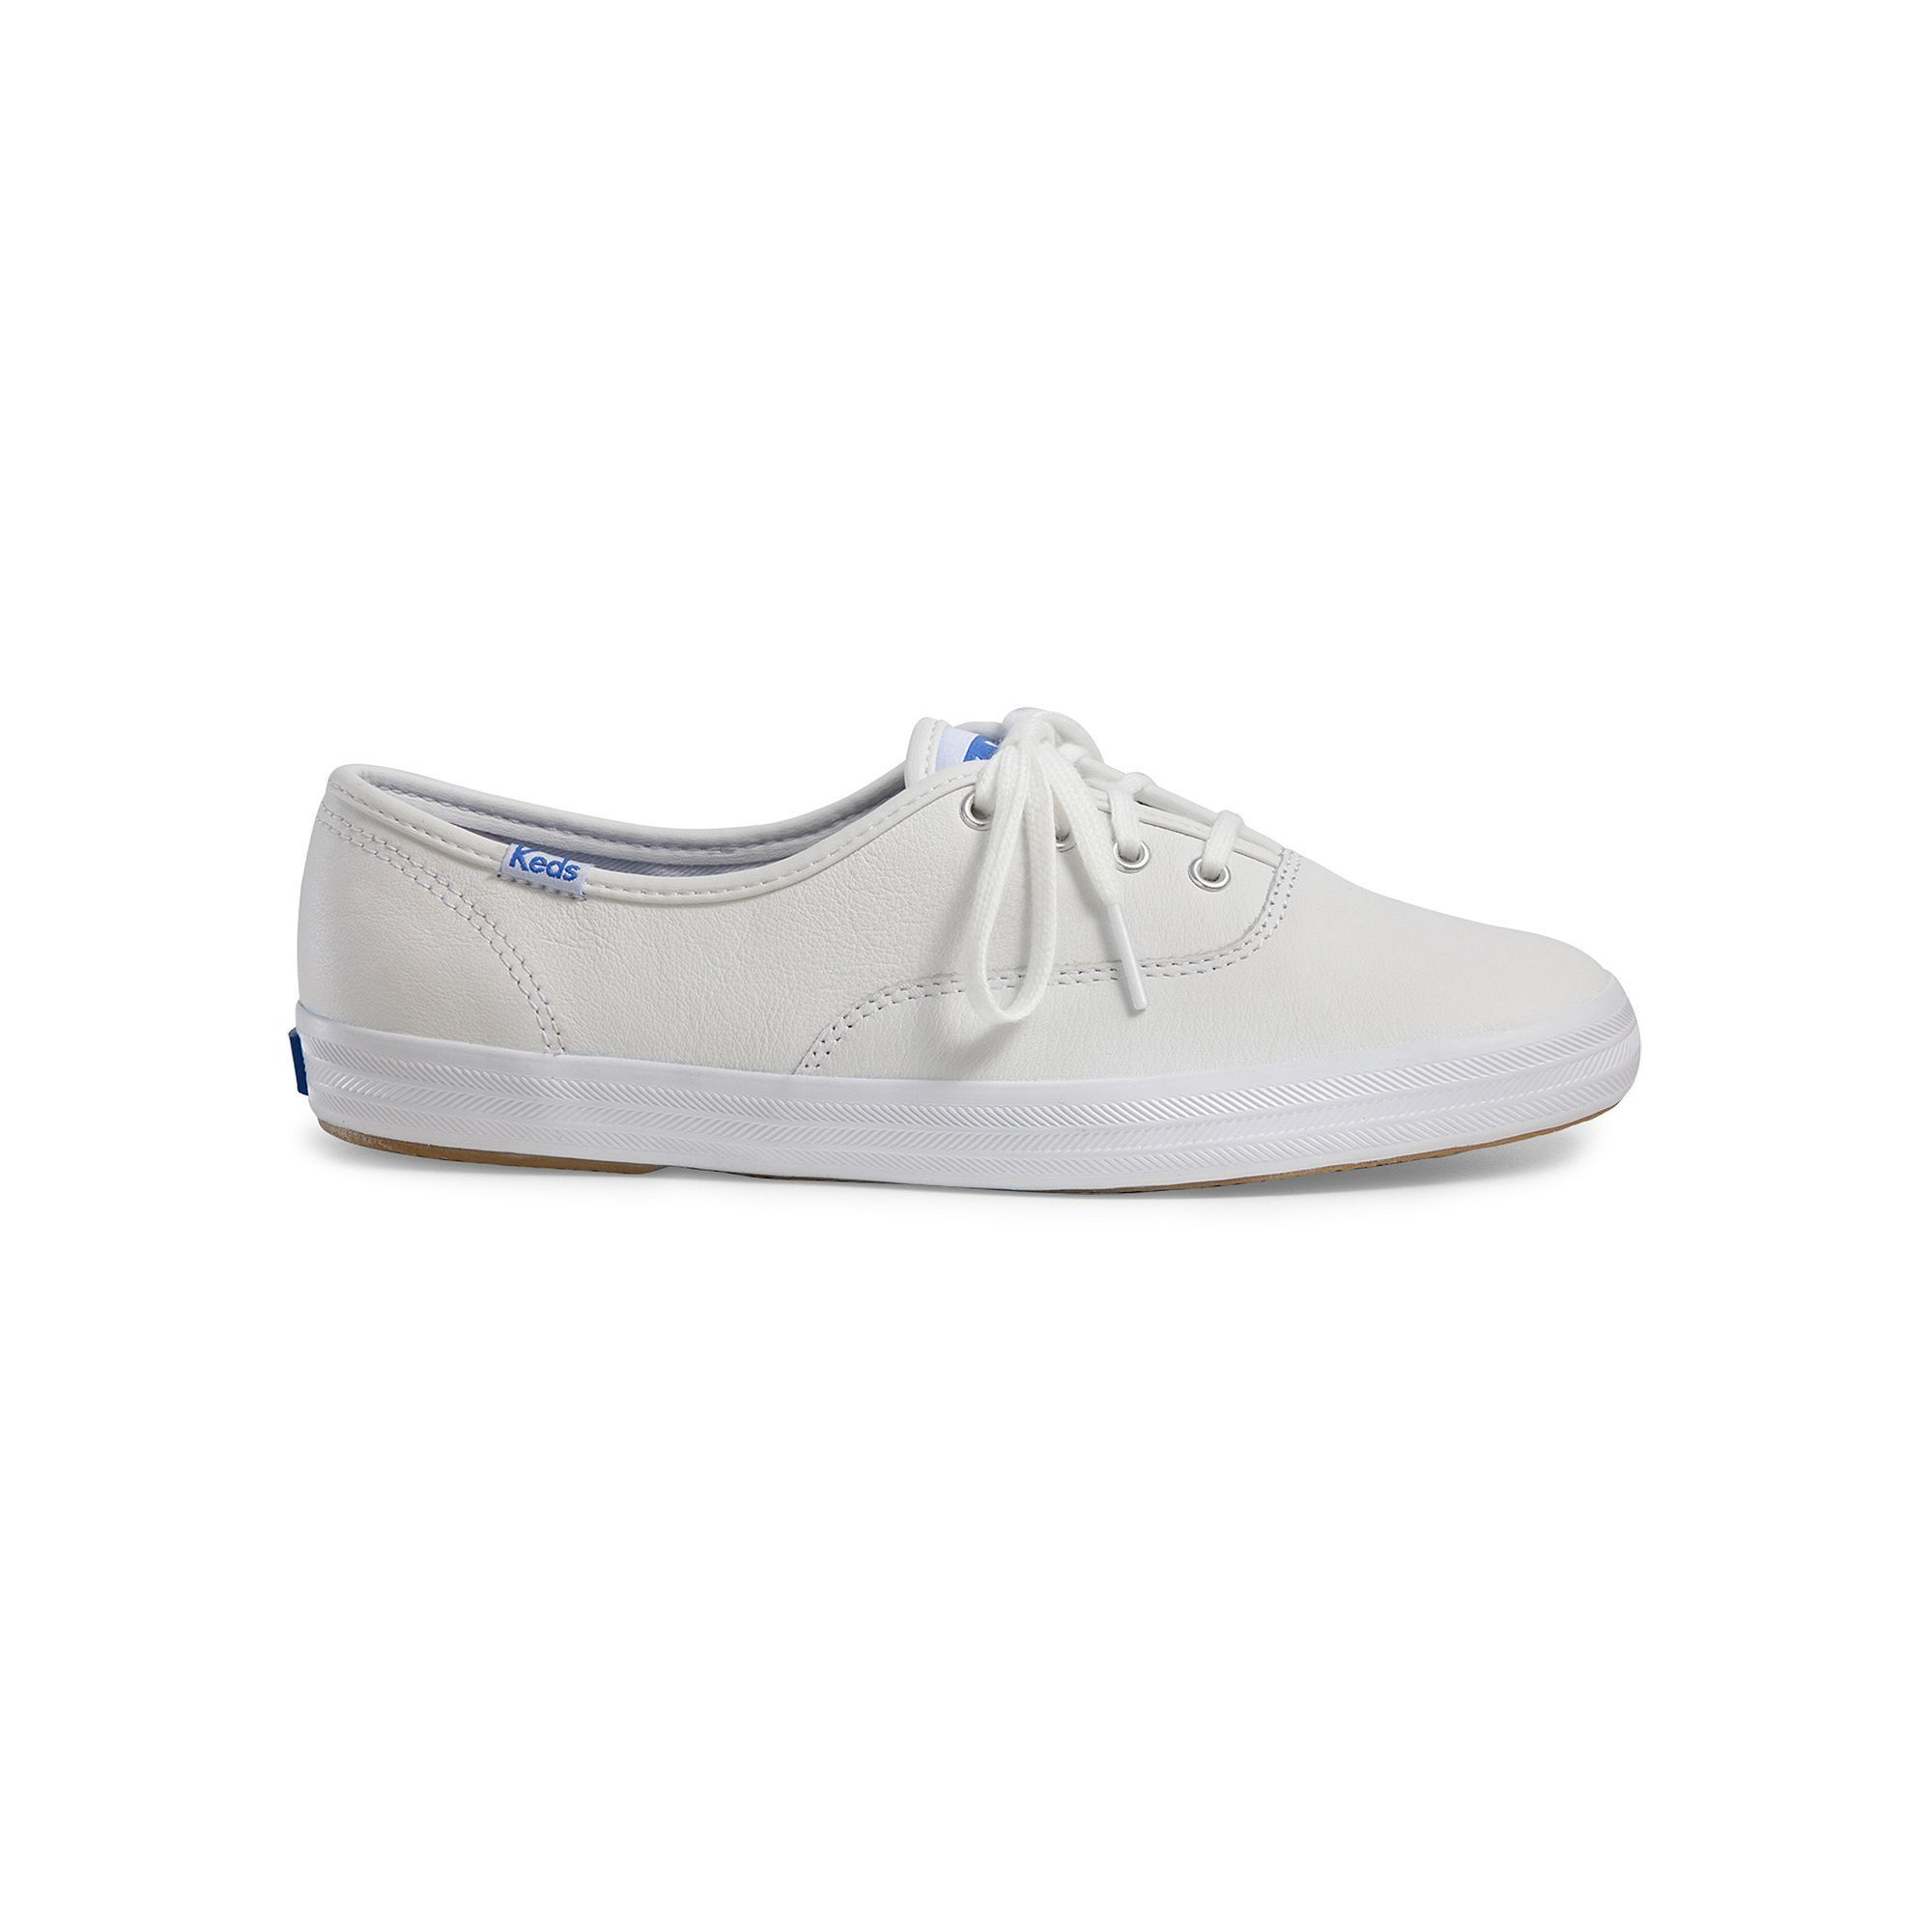 Keds Champion Women's Leather Oxford